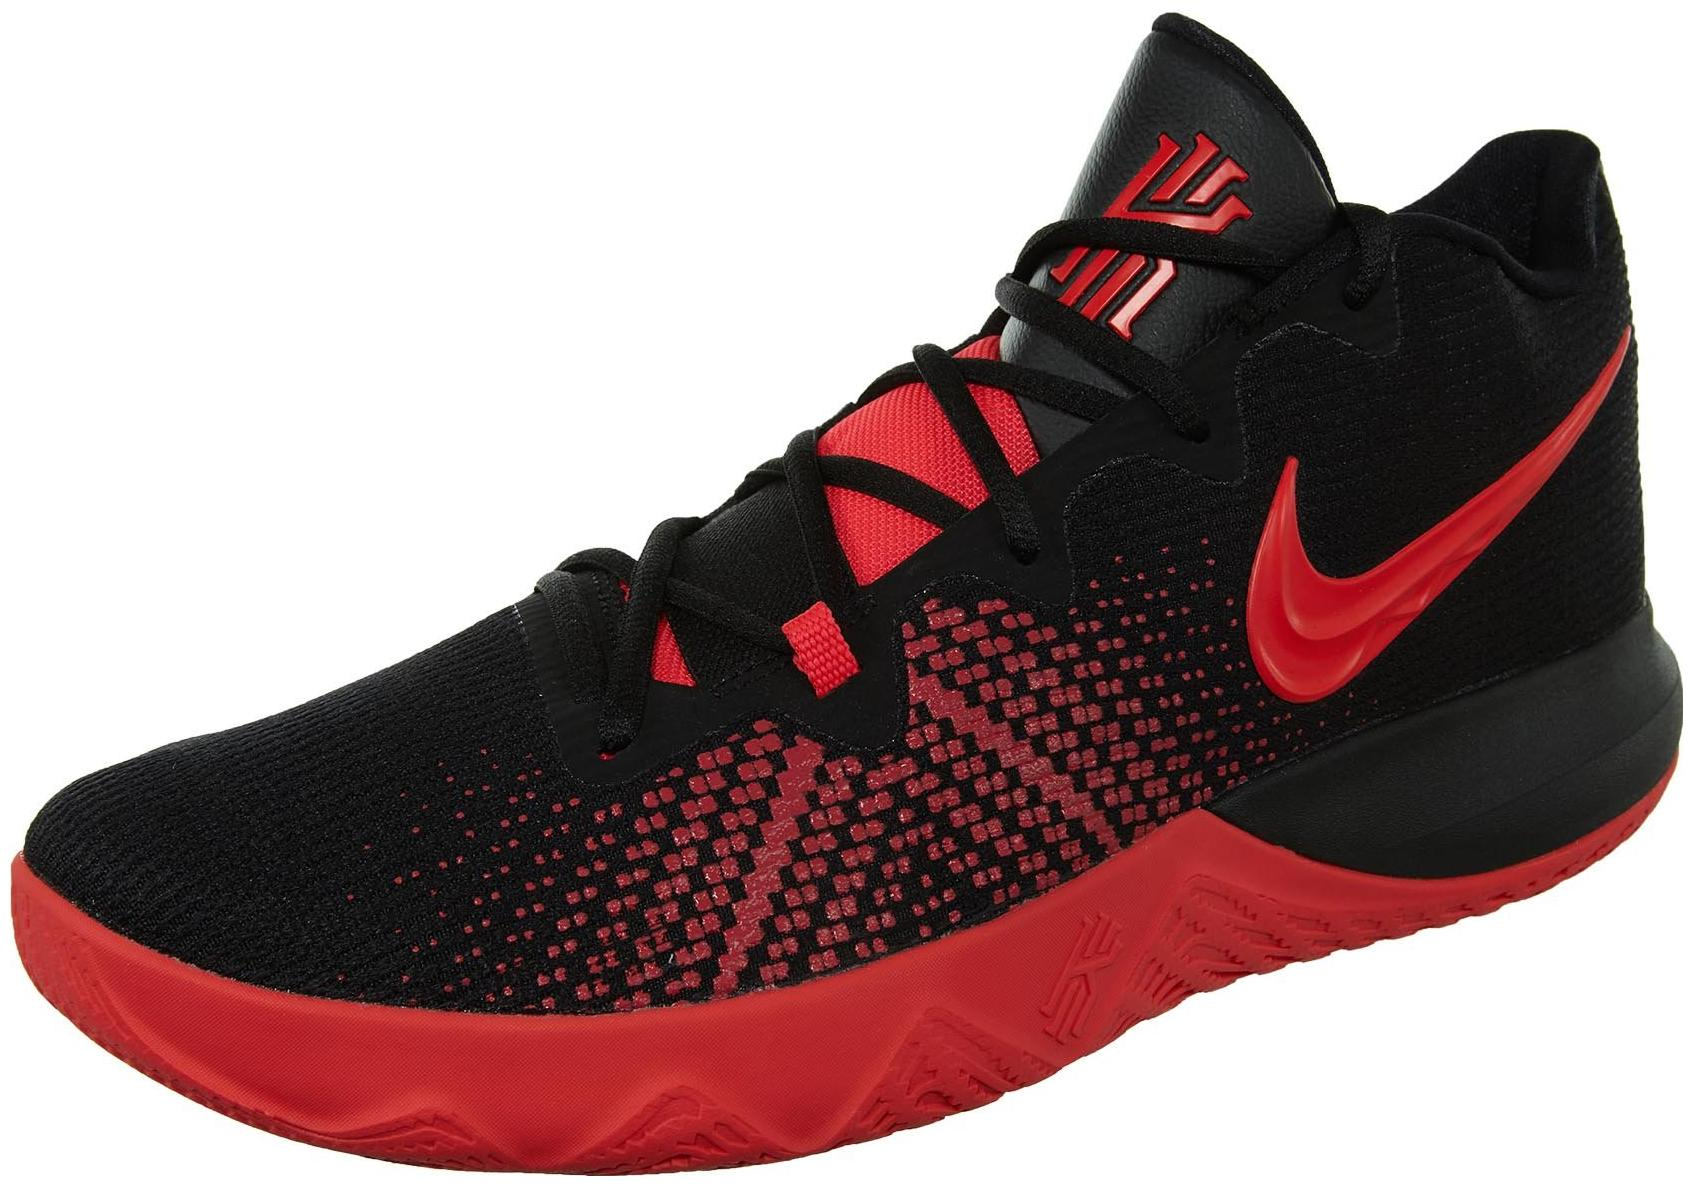 7a668feece56 Nike Kyrie Flytrap Black Basketball Shoes for Men online in India at ...